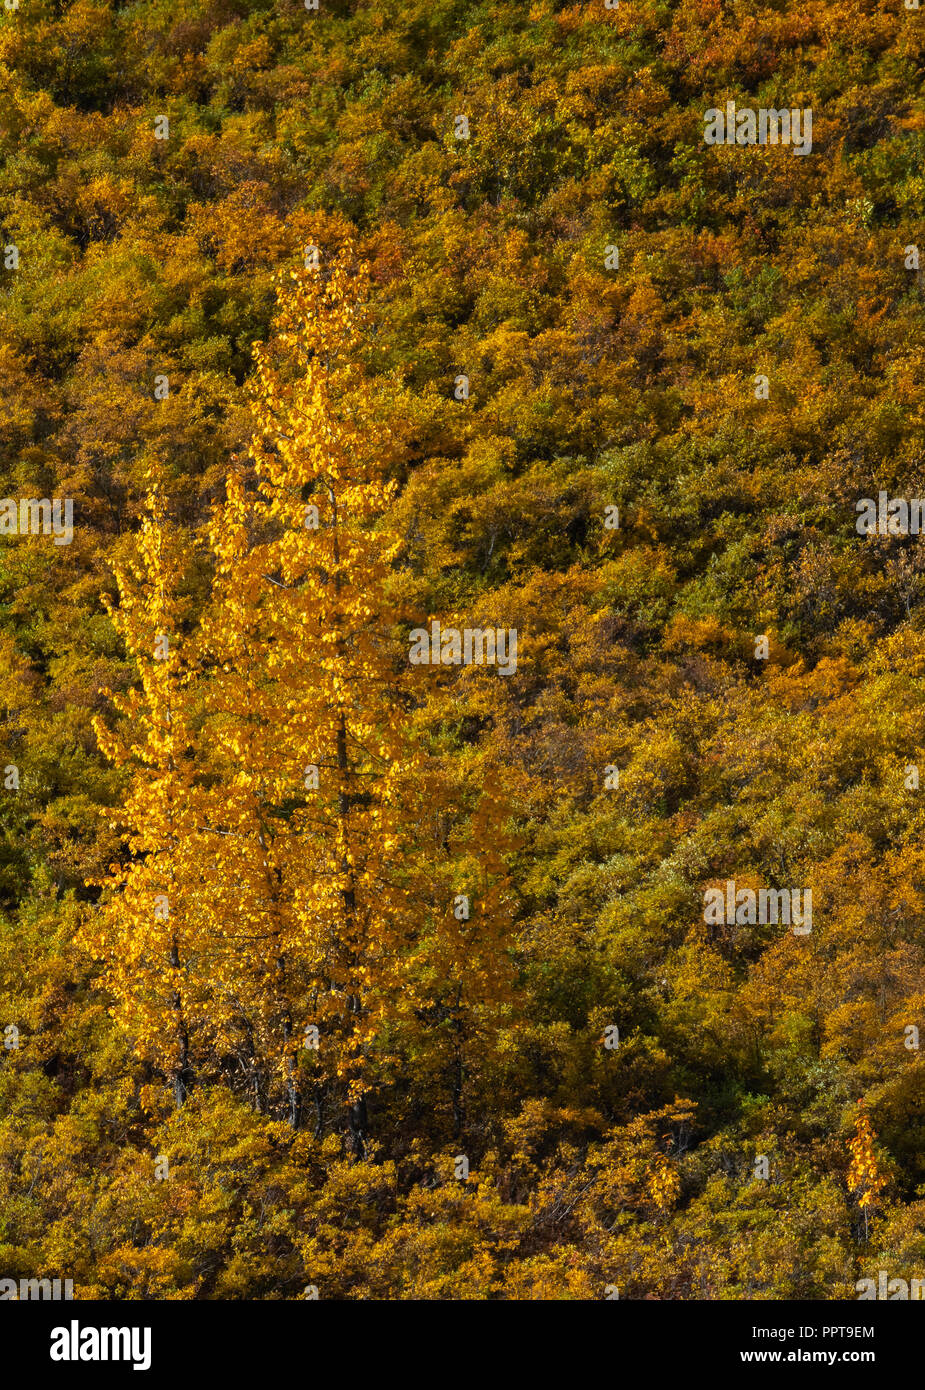 A single tall tree is fall colors matches golden yellow tones of  the low scrub around it. - Stock Image